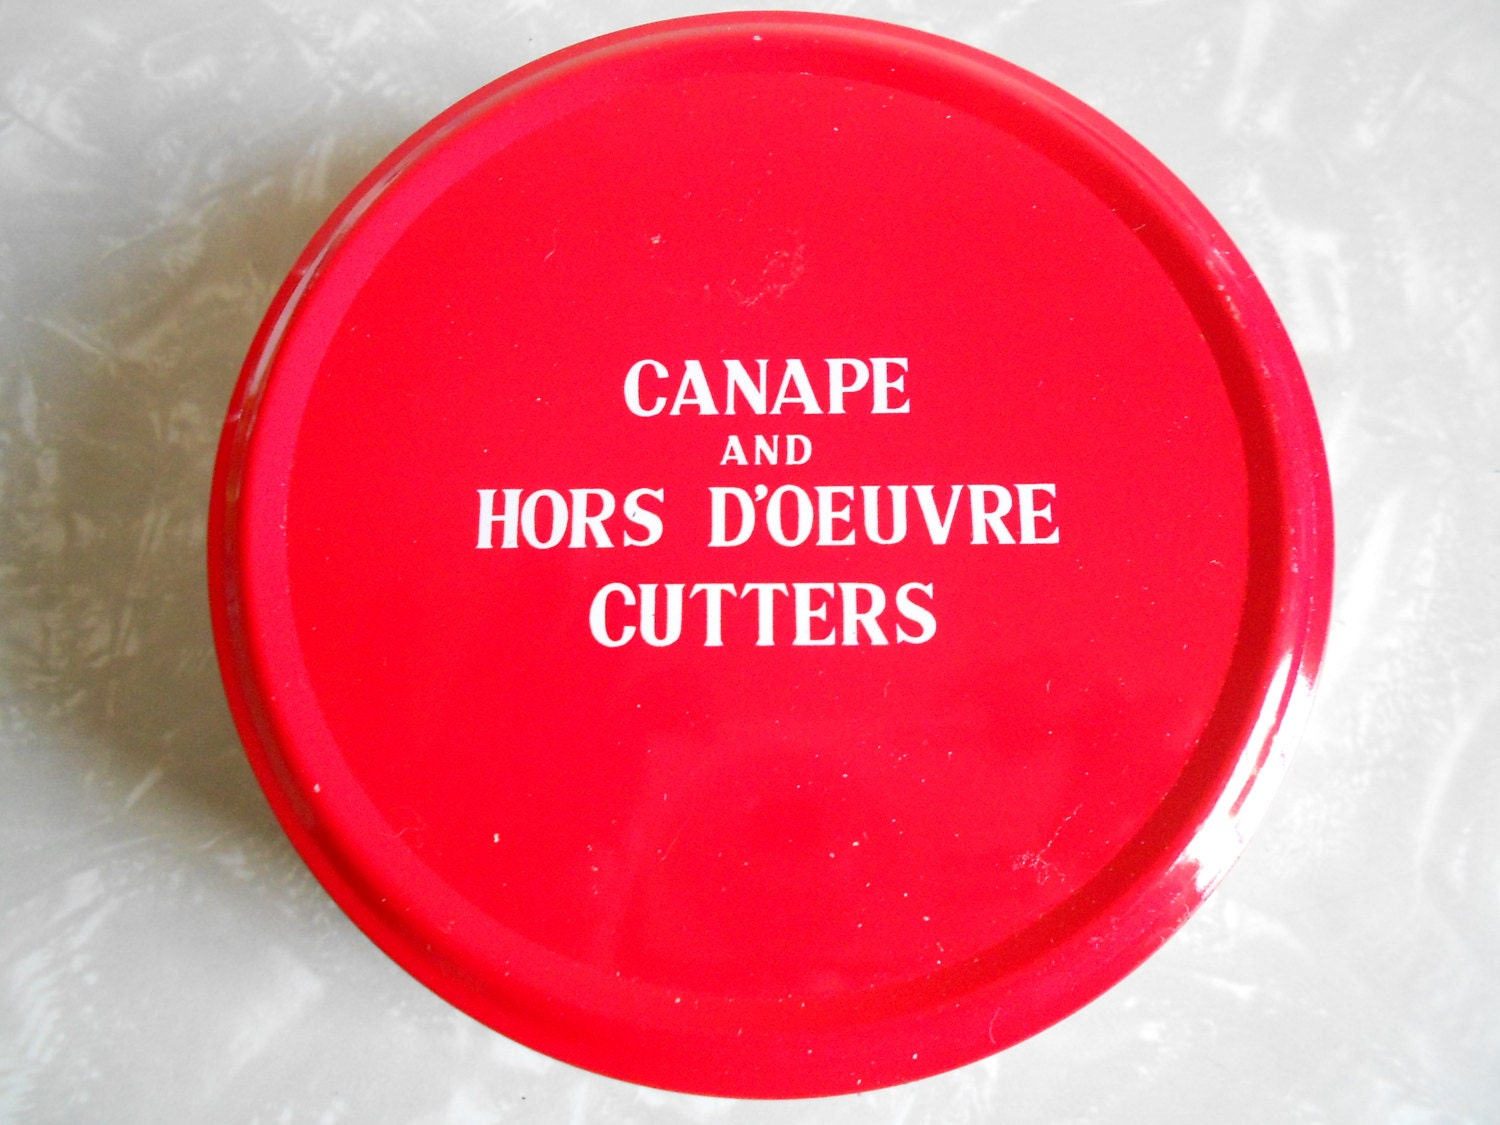 Vintage canape and hors d 39 oeuvre cutters for Canape hors d oeuvres